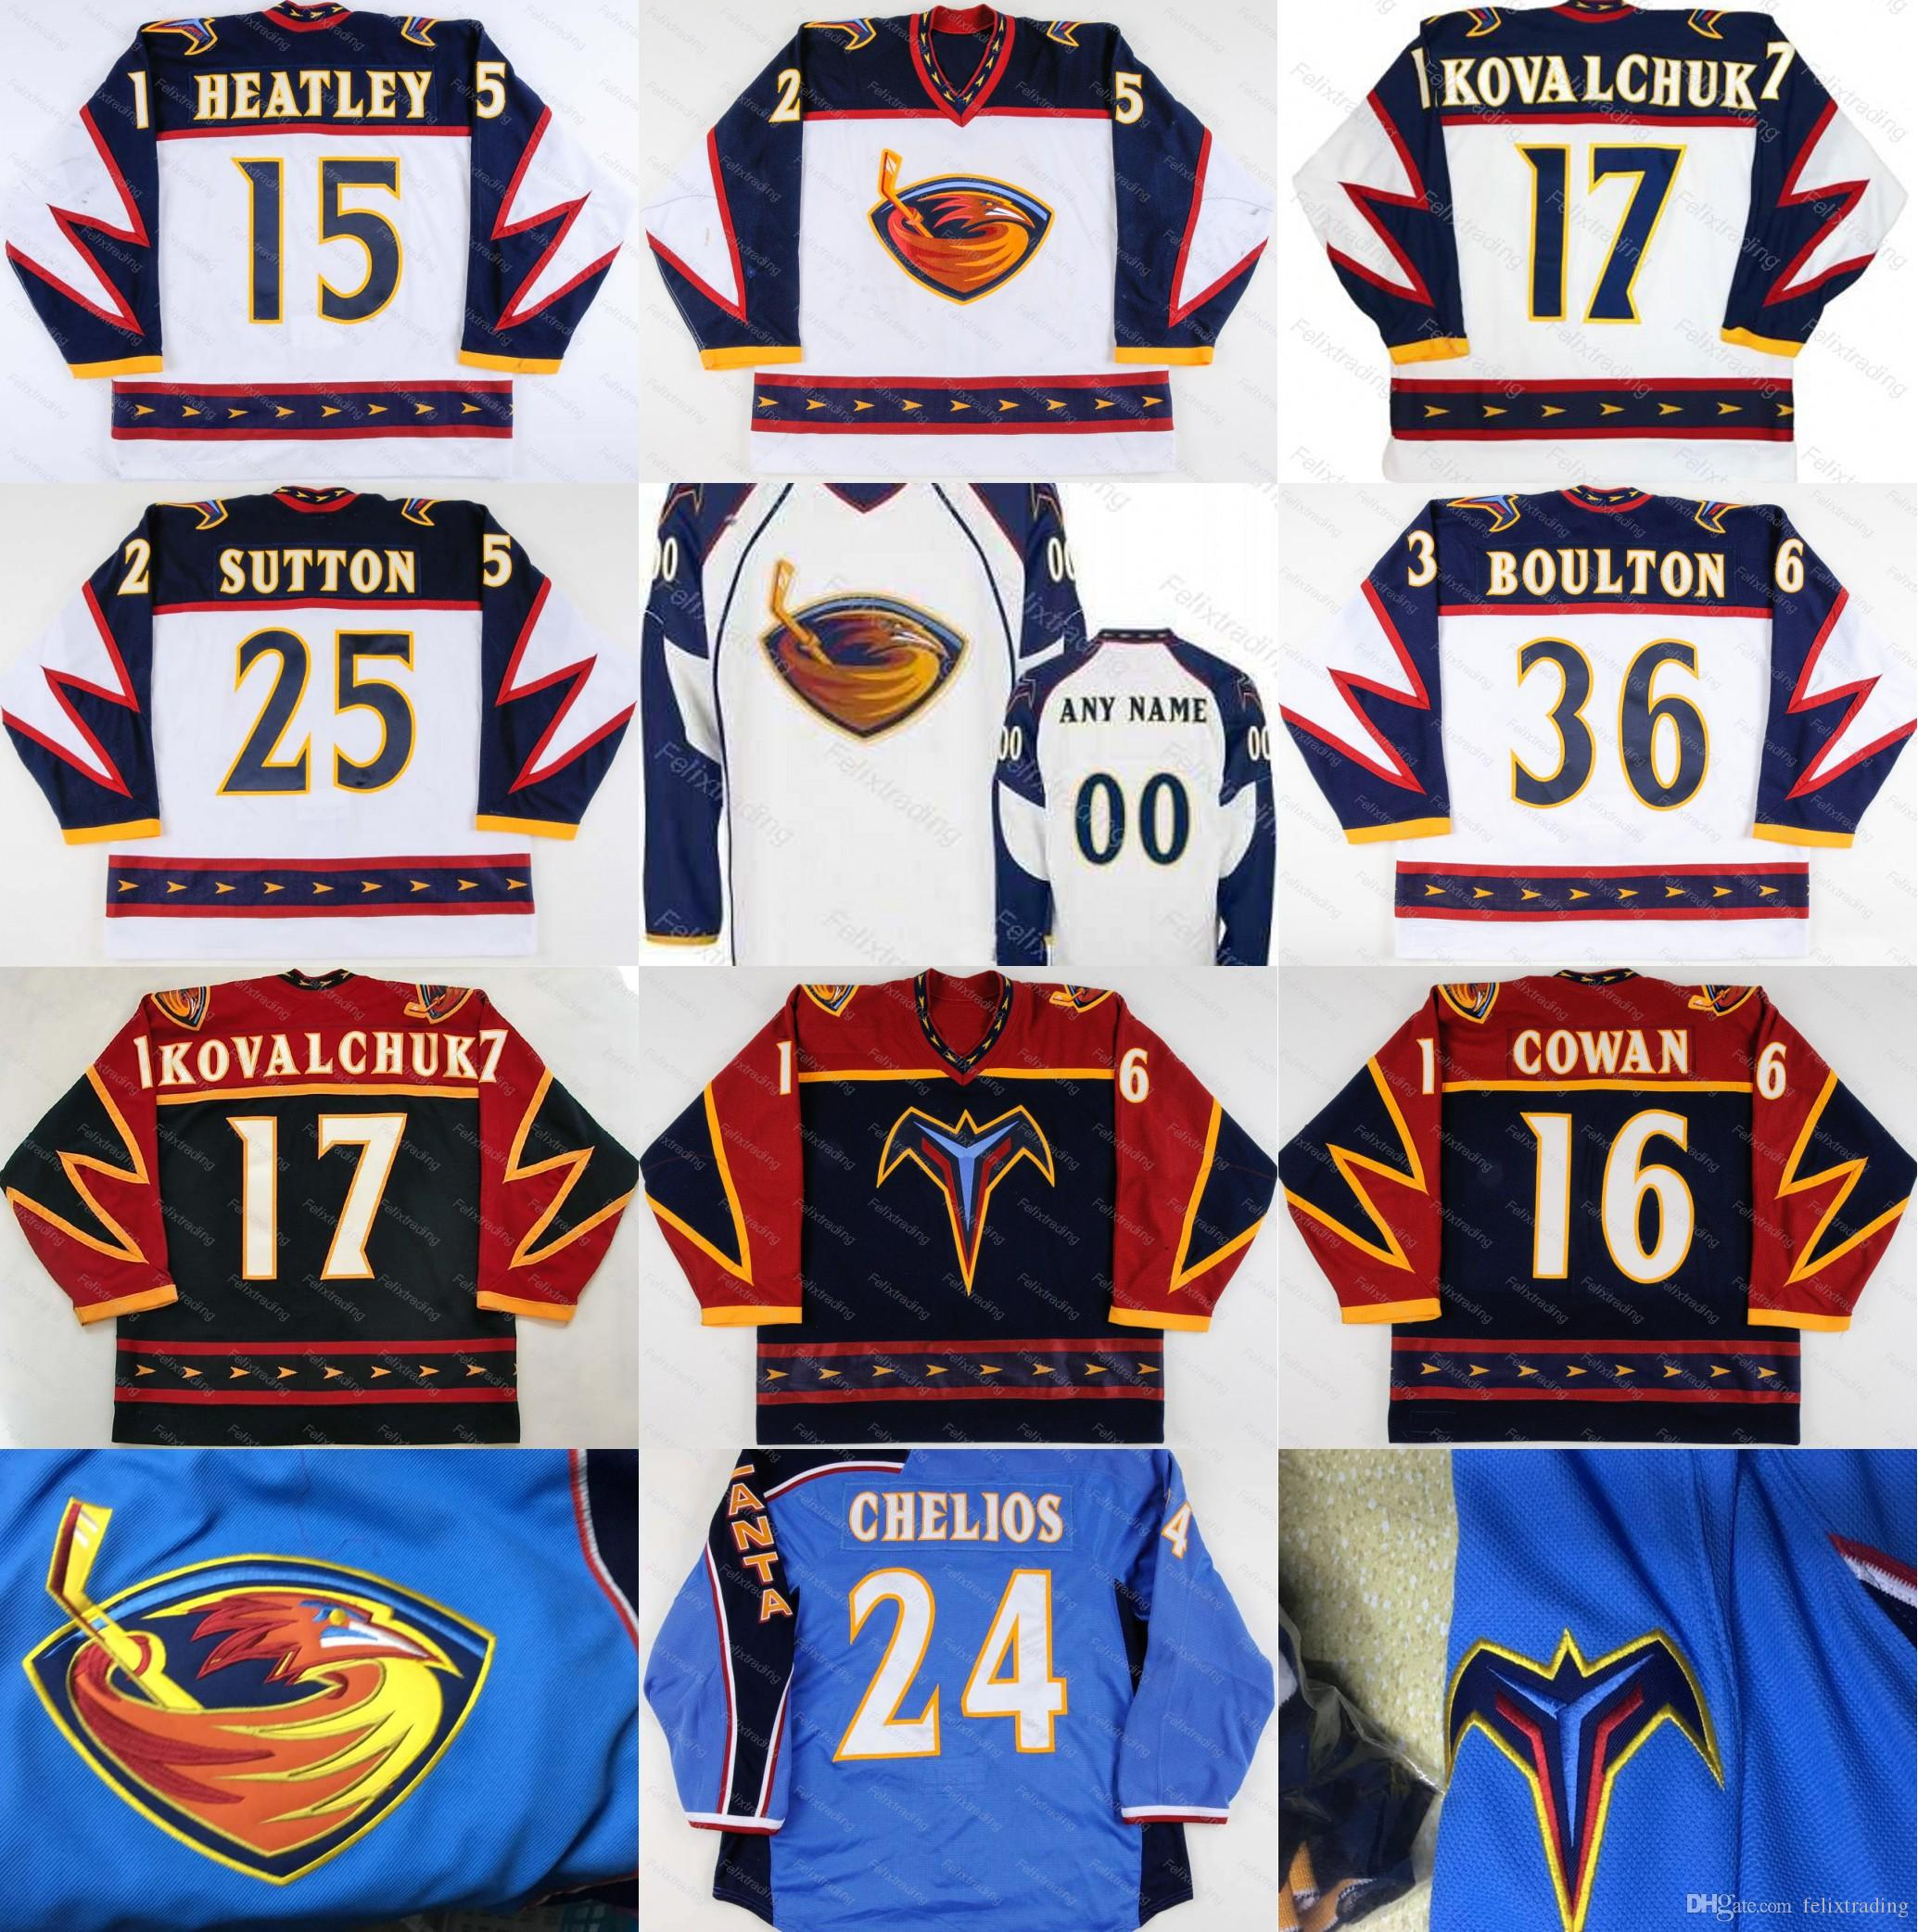 ... jerseys from sports entertainmen f164b 99e3a  sale 2018 atlanta  thrashers 17 ilya kovalchuk 15 dany heatley 16 jeff cowan 39 tobias enstrom 42aa37e33